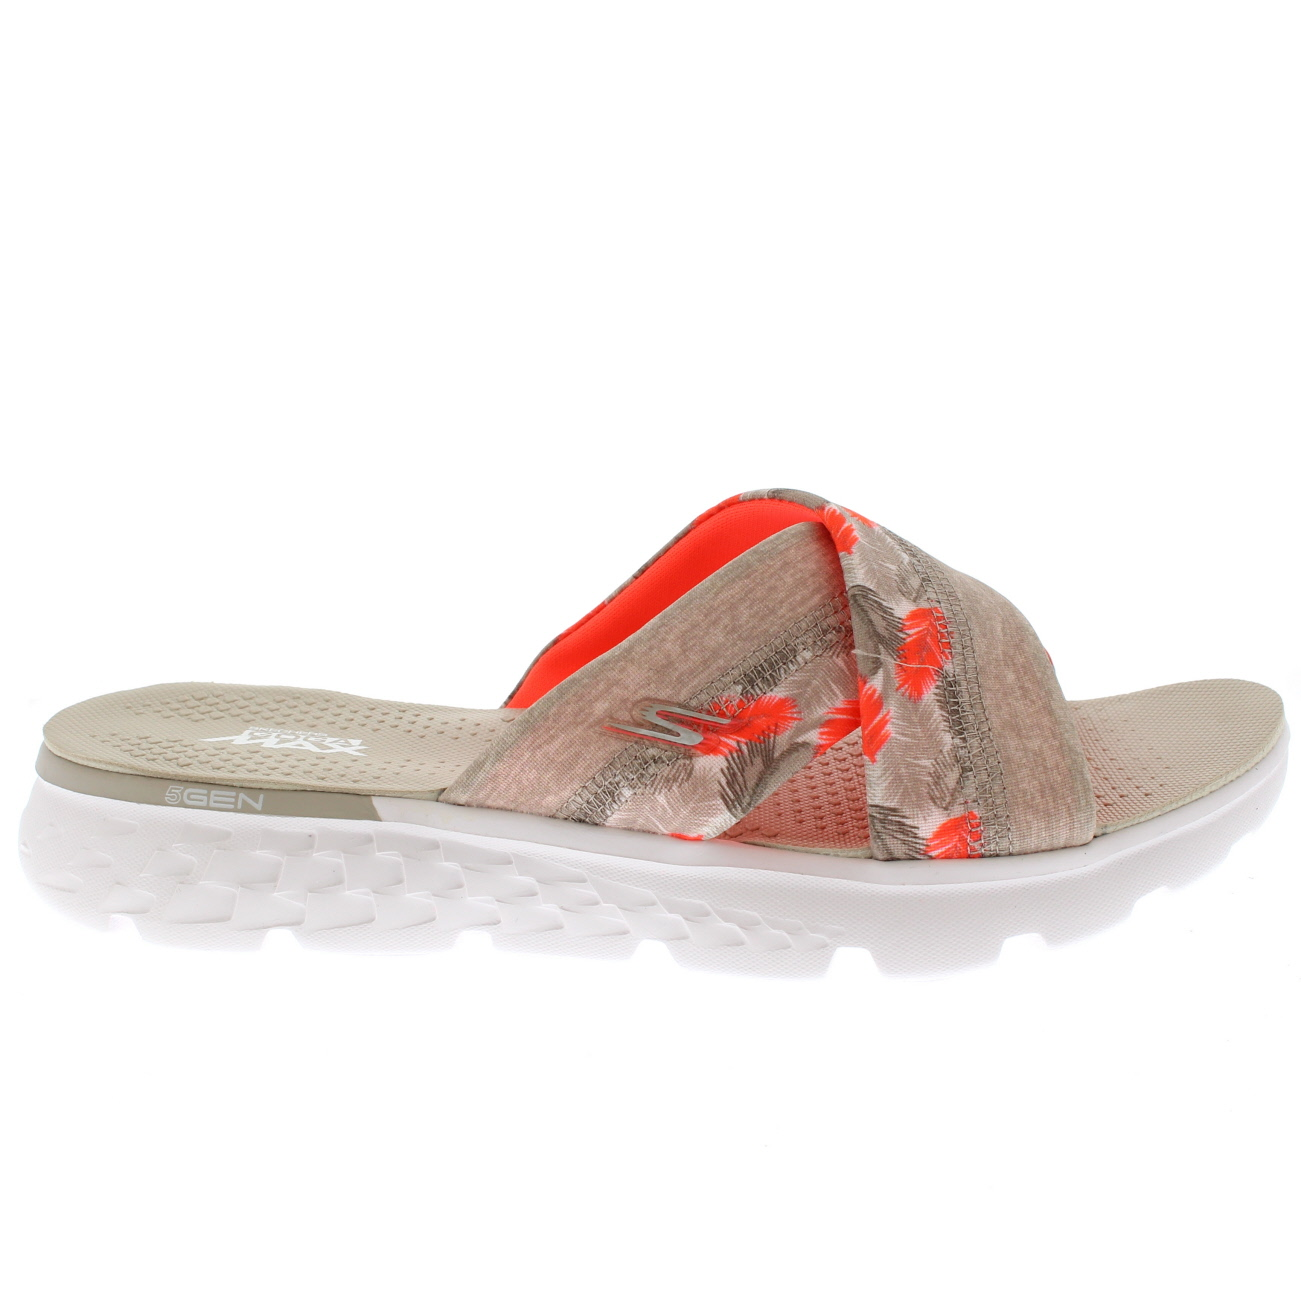 Details Tropical Damen 400 Sandale On Sport Skechers Yoga Zu Eu Leicht Go Gehen 41 The 36 3RA4jq5L